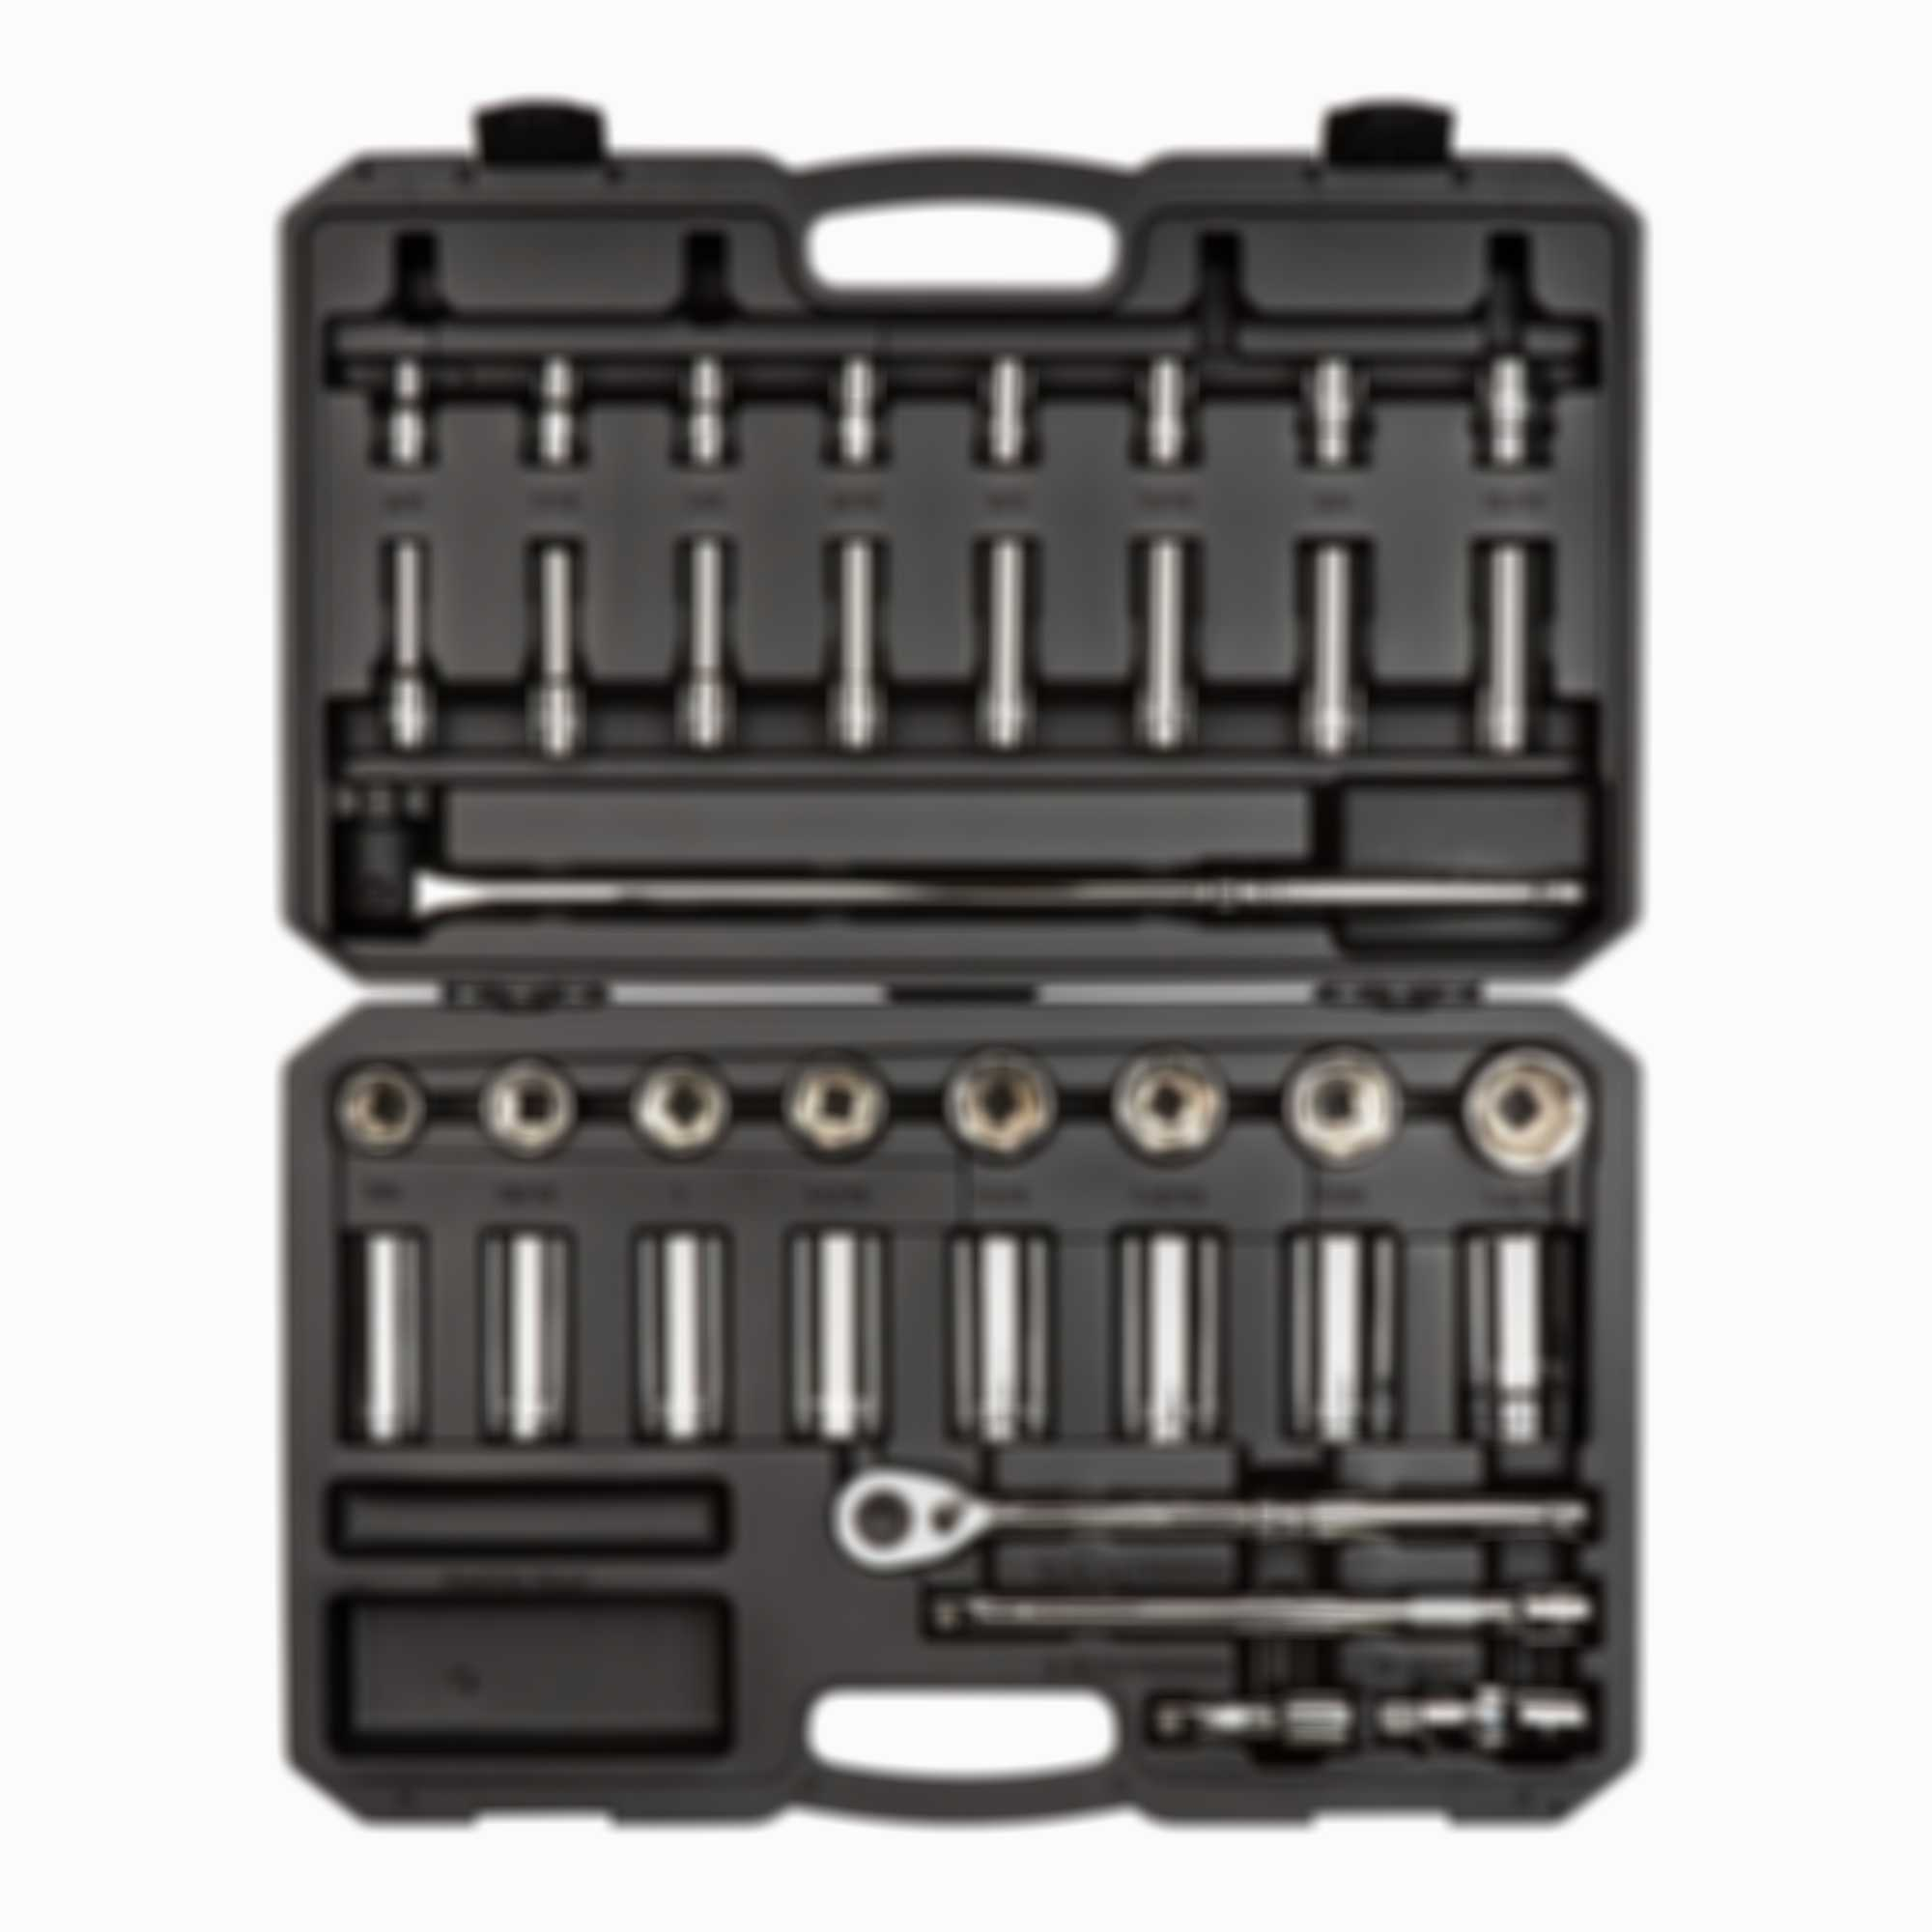 1/2 Inch Drive 6-Point Socket & Ratchet Set, 38-Piece (3/8 - 1-5/16 in.)